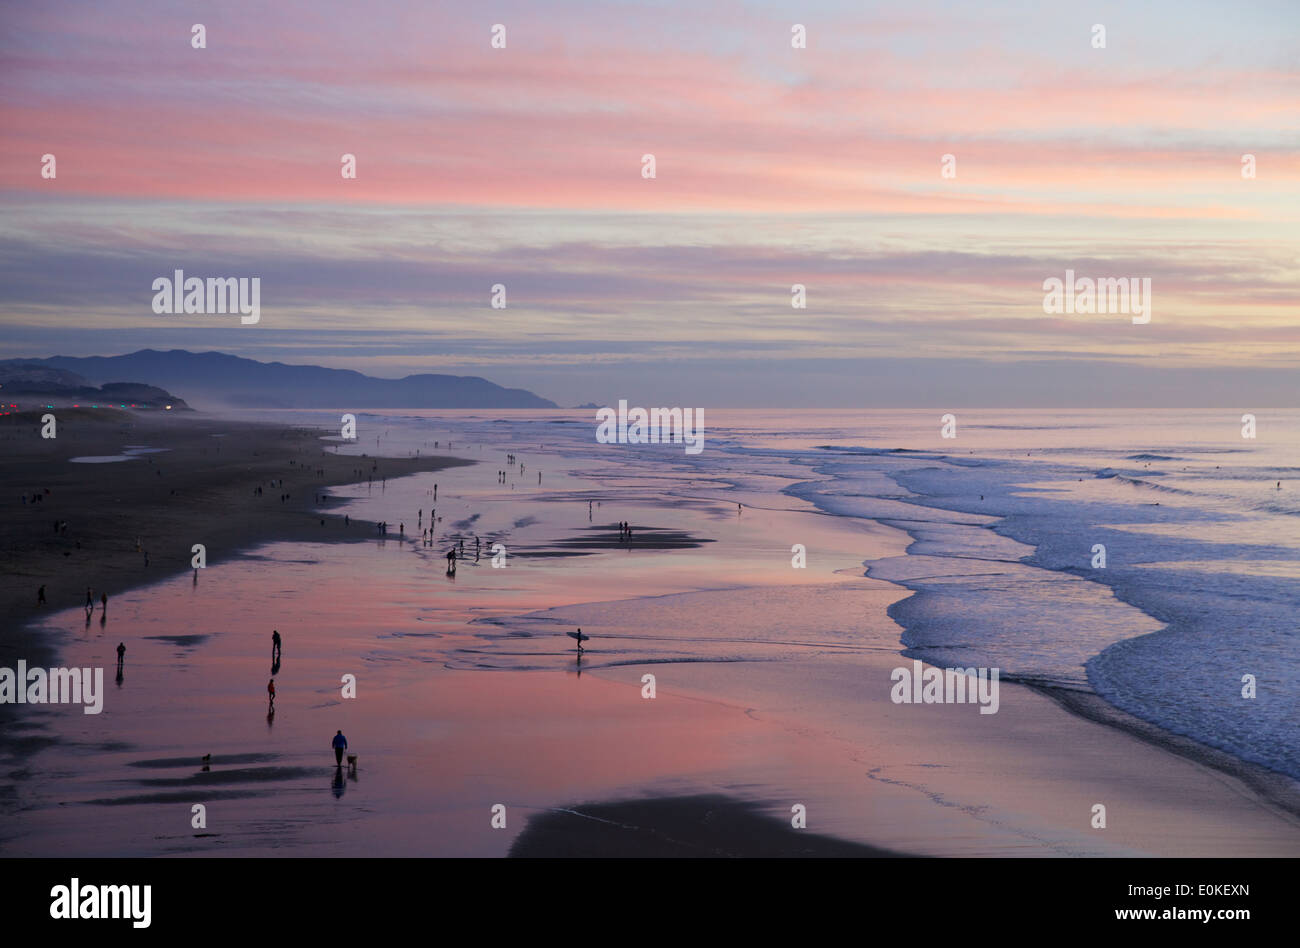 People walking along the shore are silhouetted against a brilliant sunset with colors of blue, pink and purple. - Stock Image